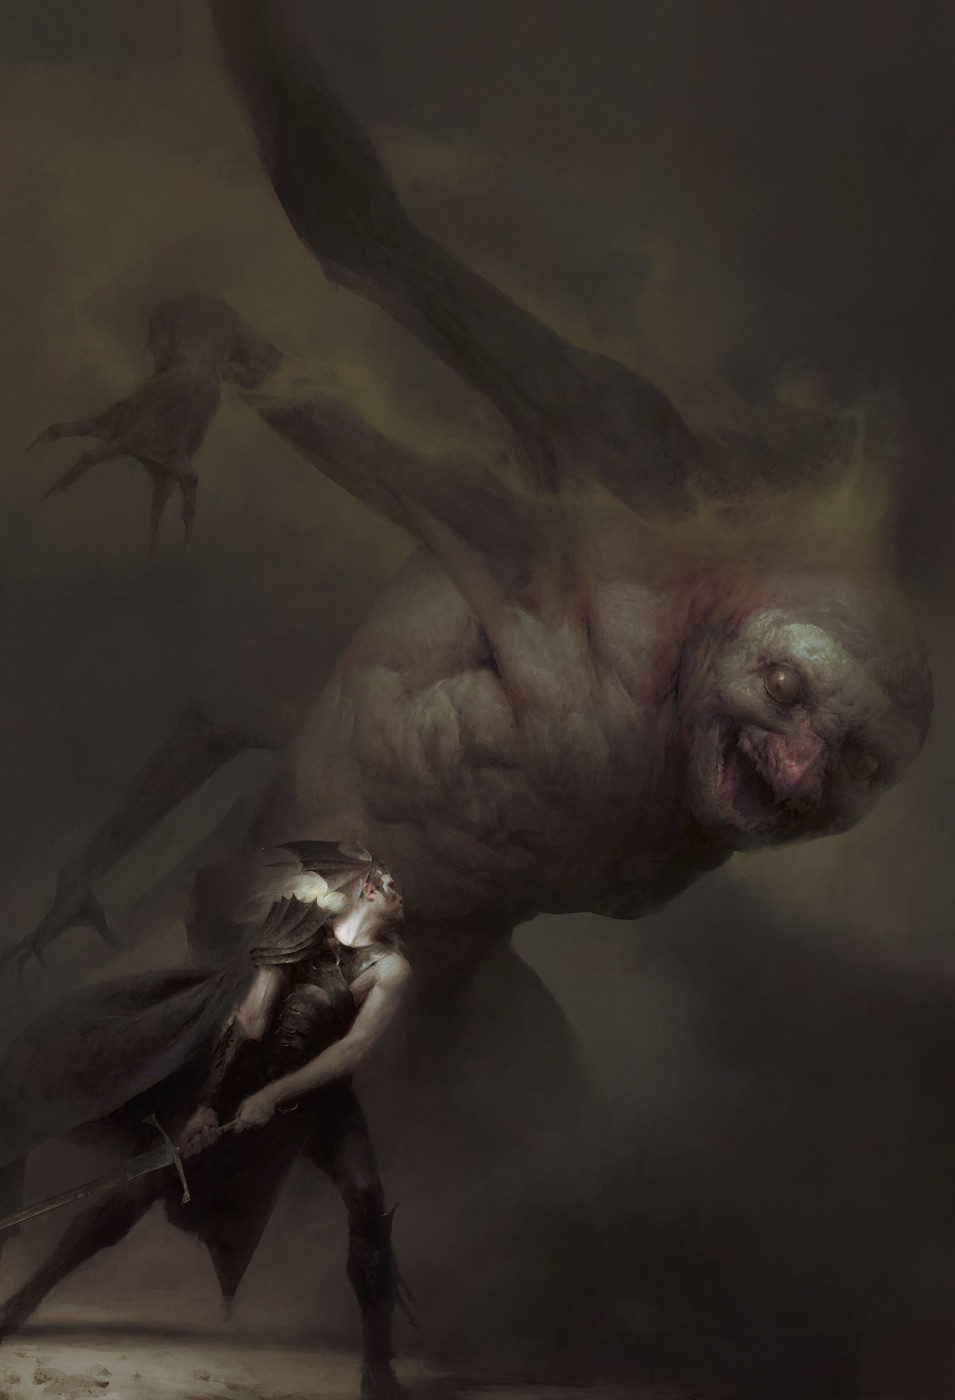 The Dark Fantasy Art of Piotr Jabłoński